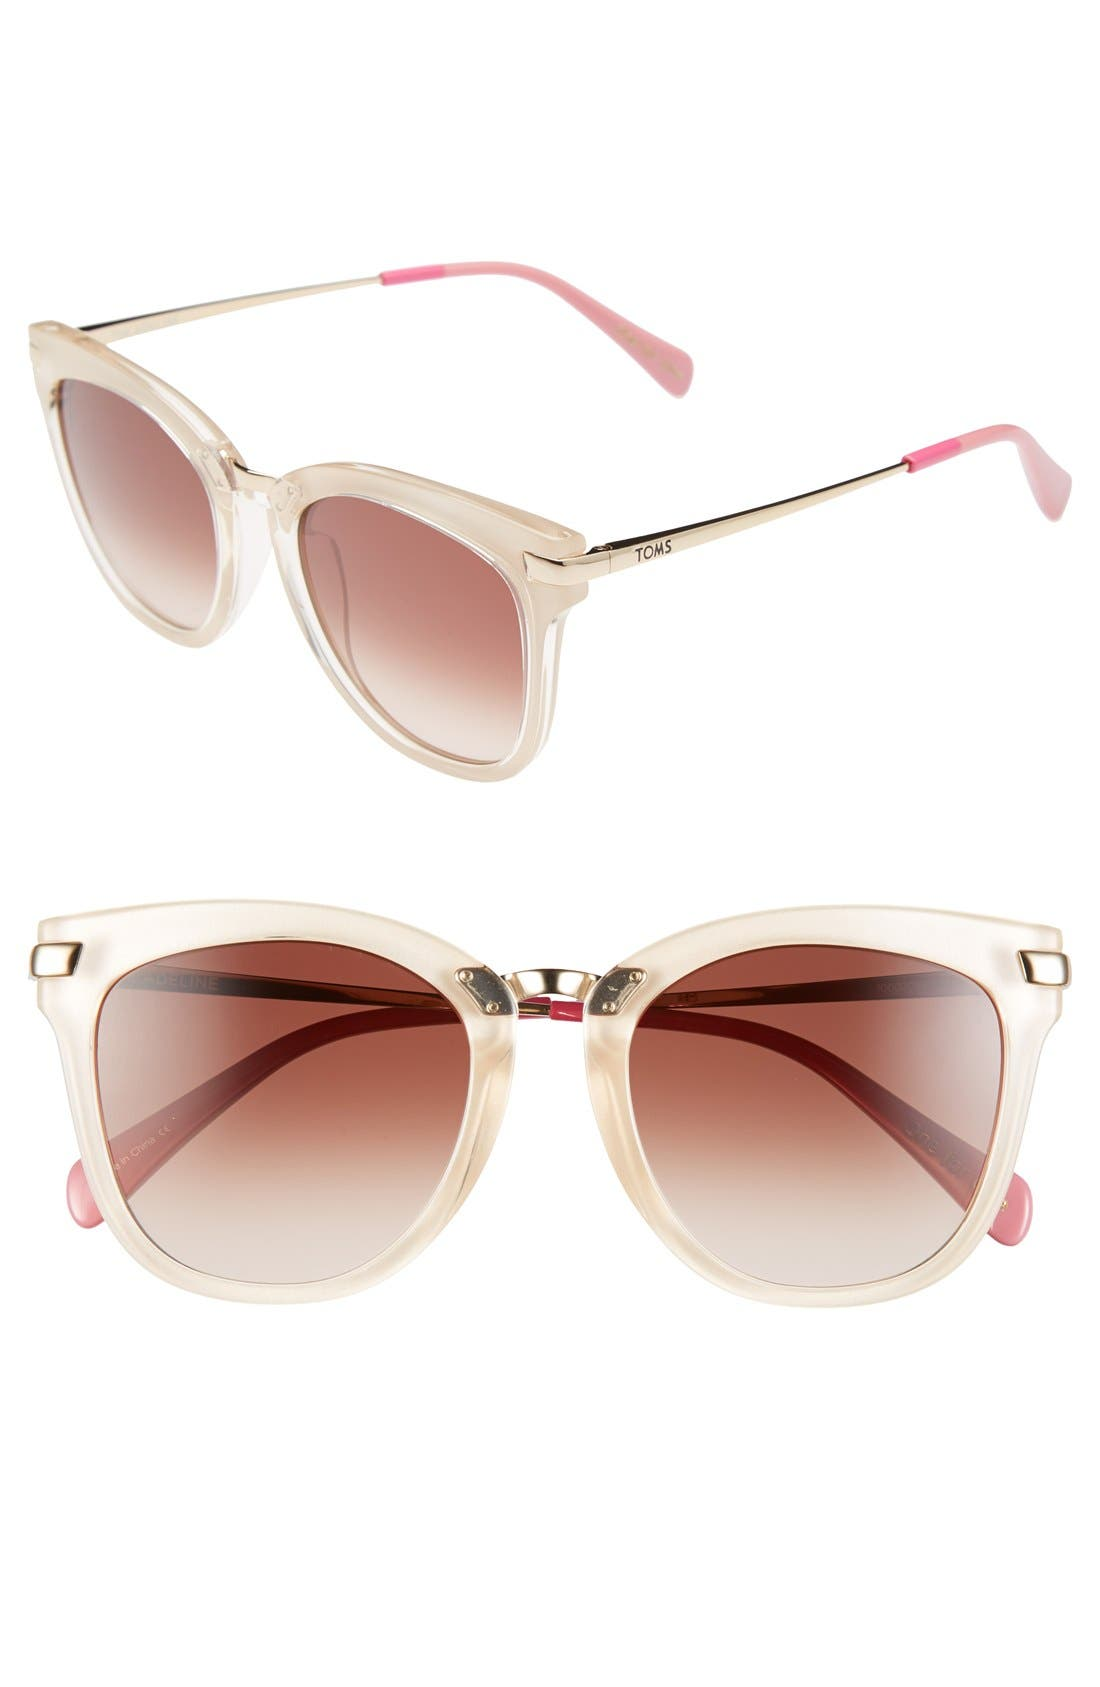 Alternate Image 1 Selected - TOMS 'Adeline' 51mm Sunglasses